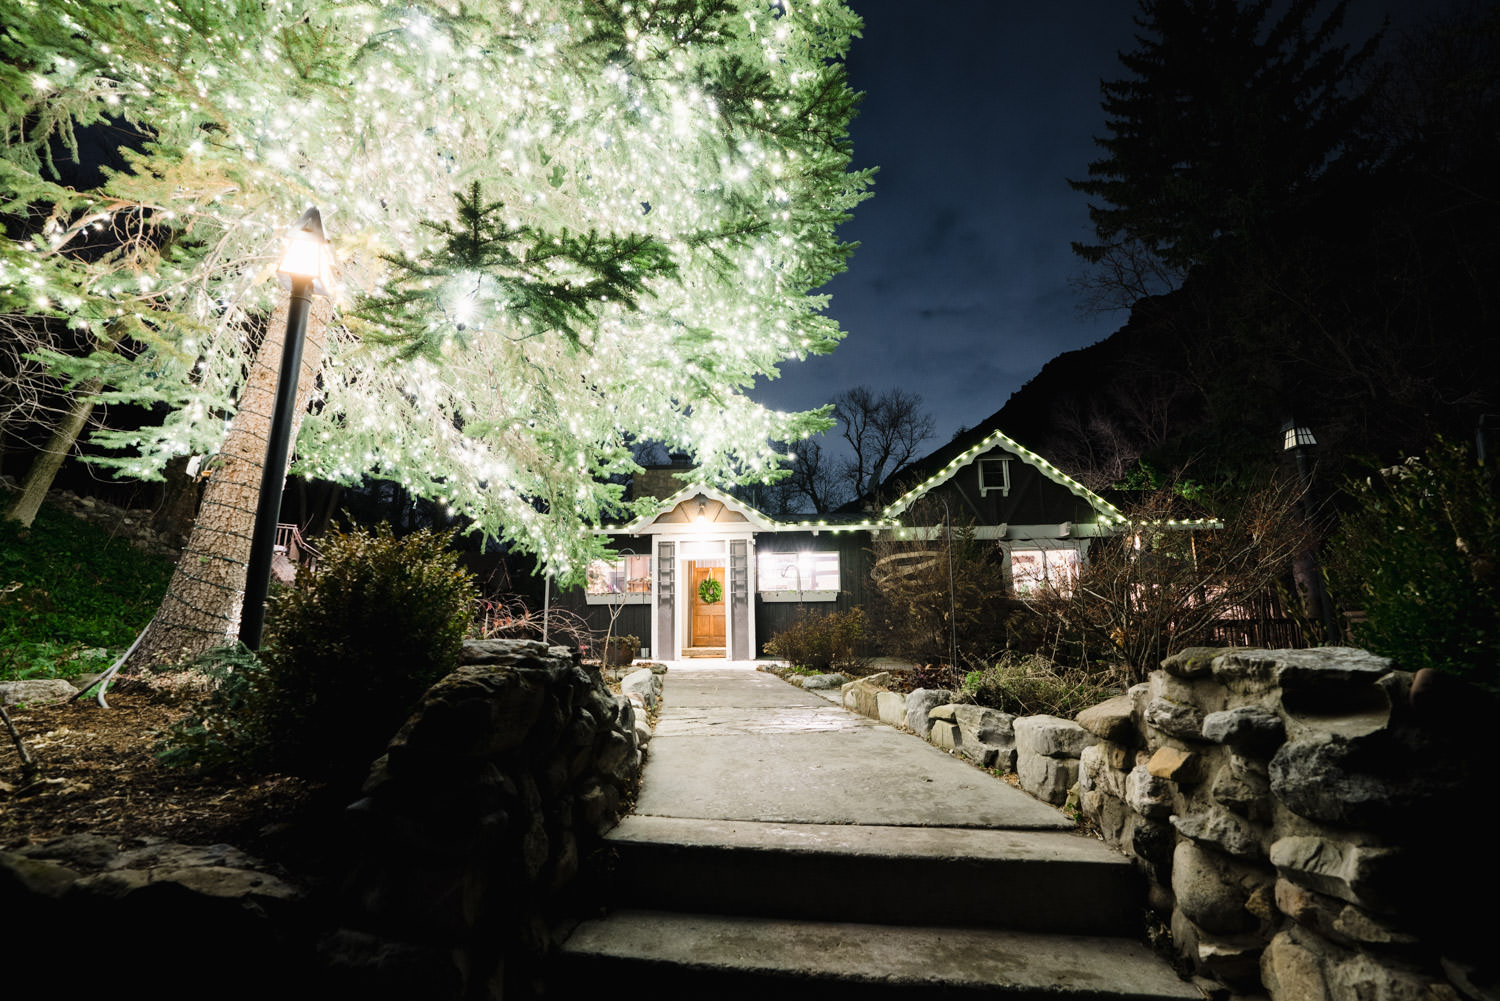 Millcreek Inn wedding lit-up inn entrance photo